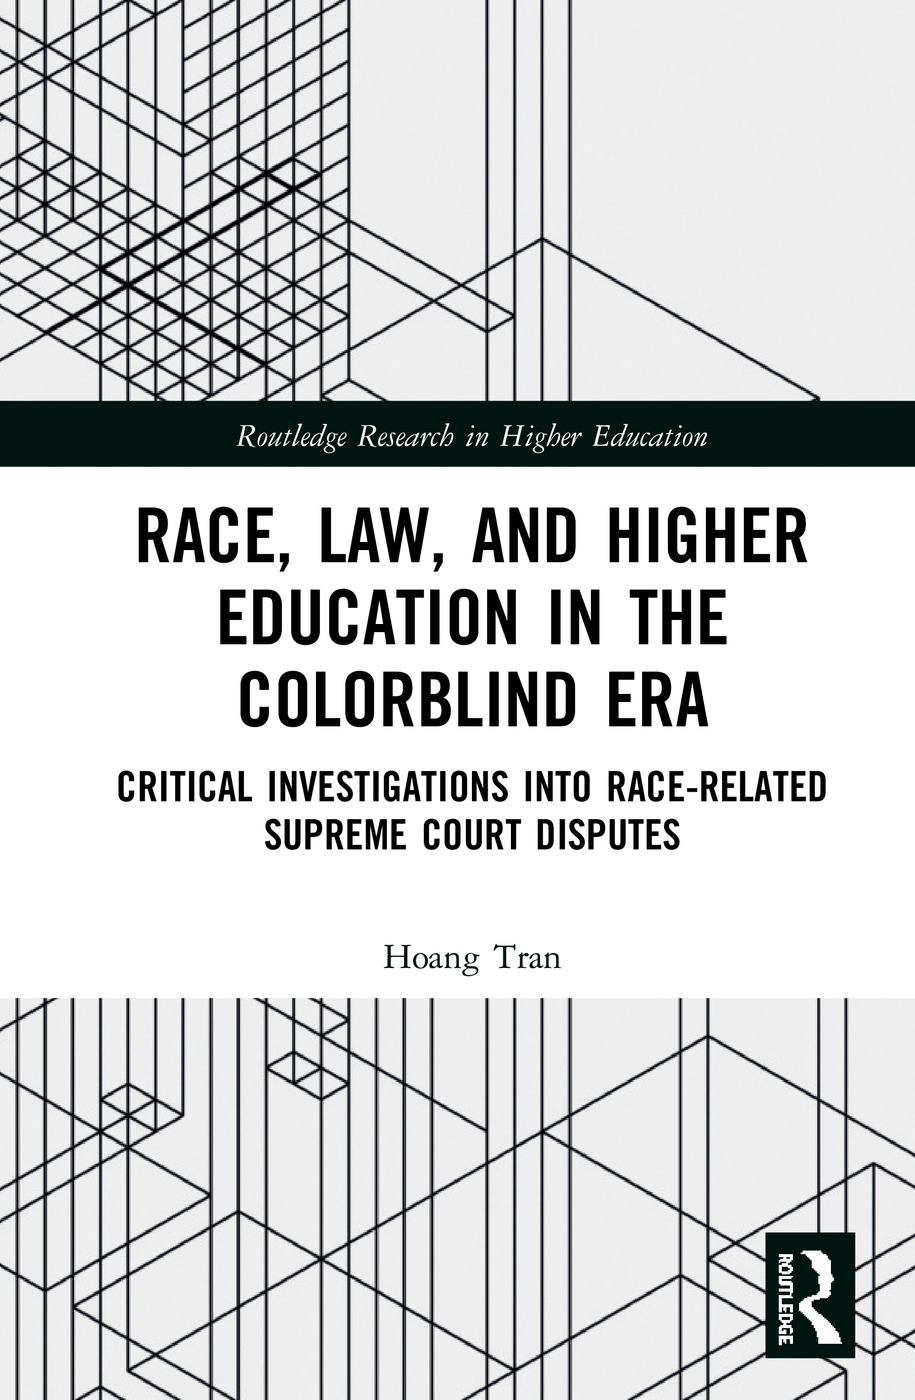 Race, Law, and Higher Education in the Colorblind Era